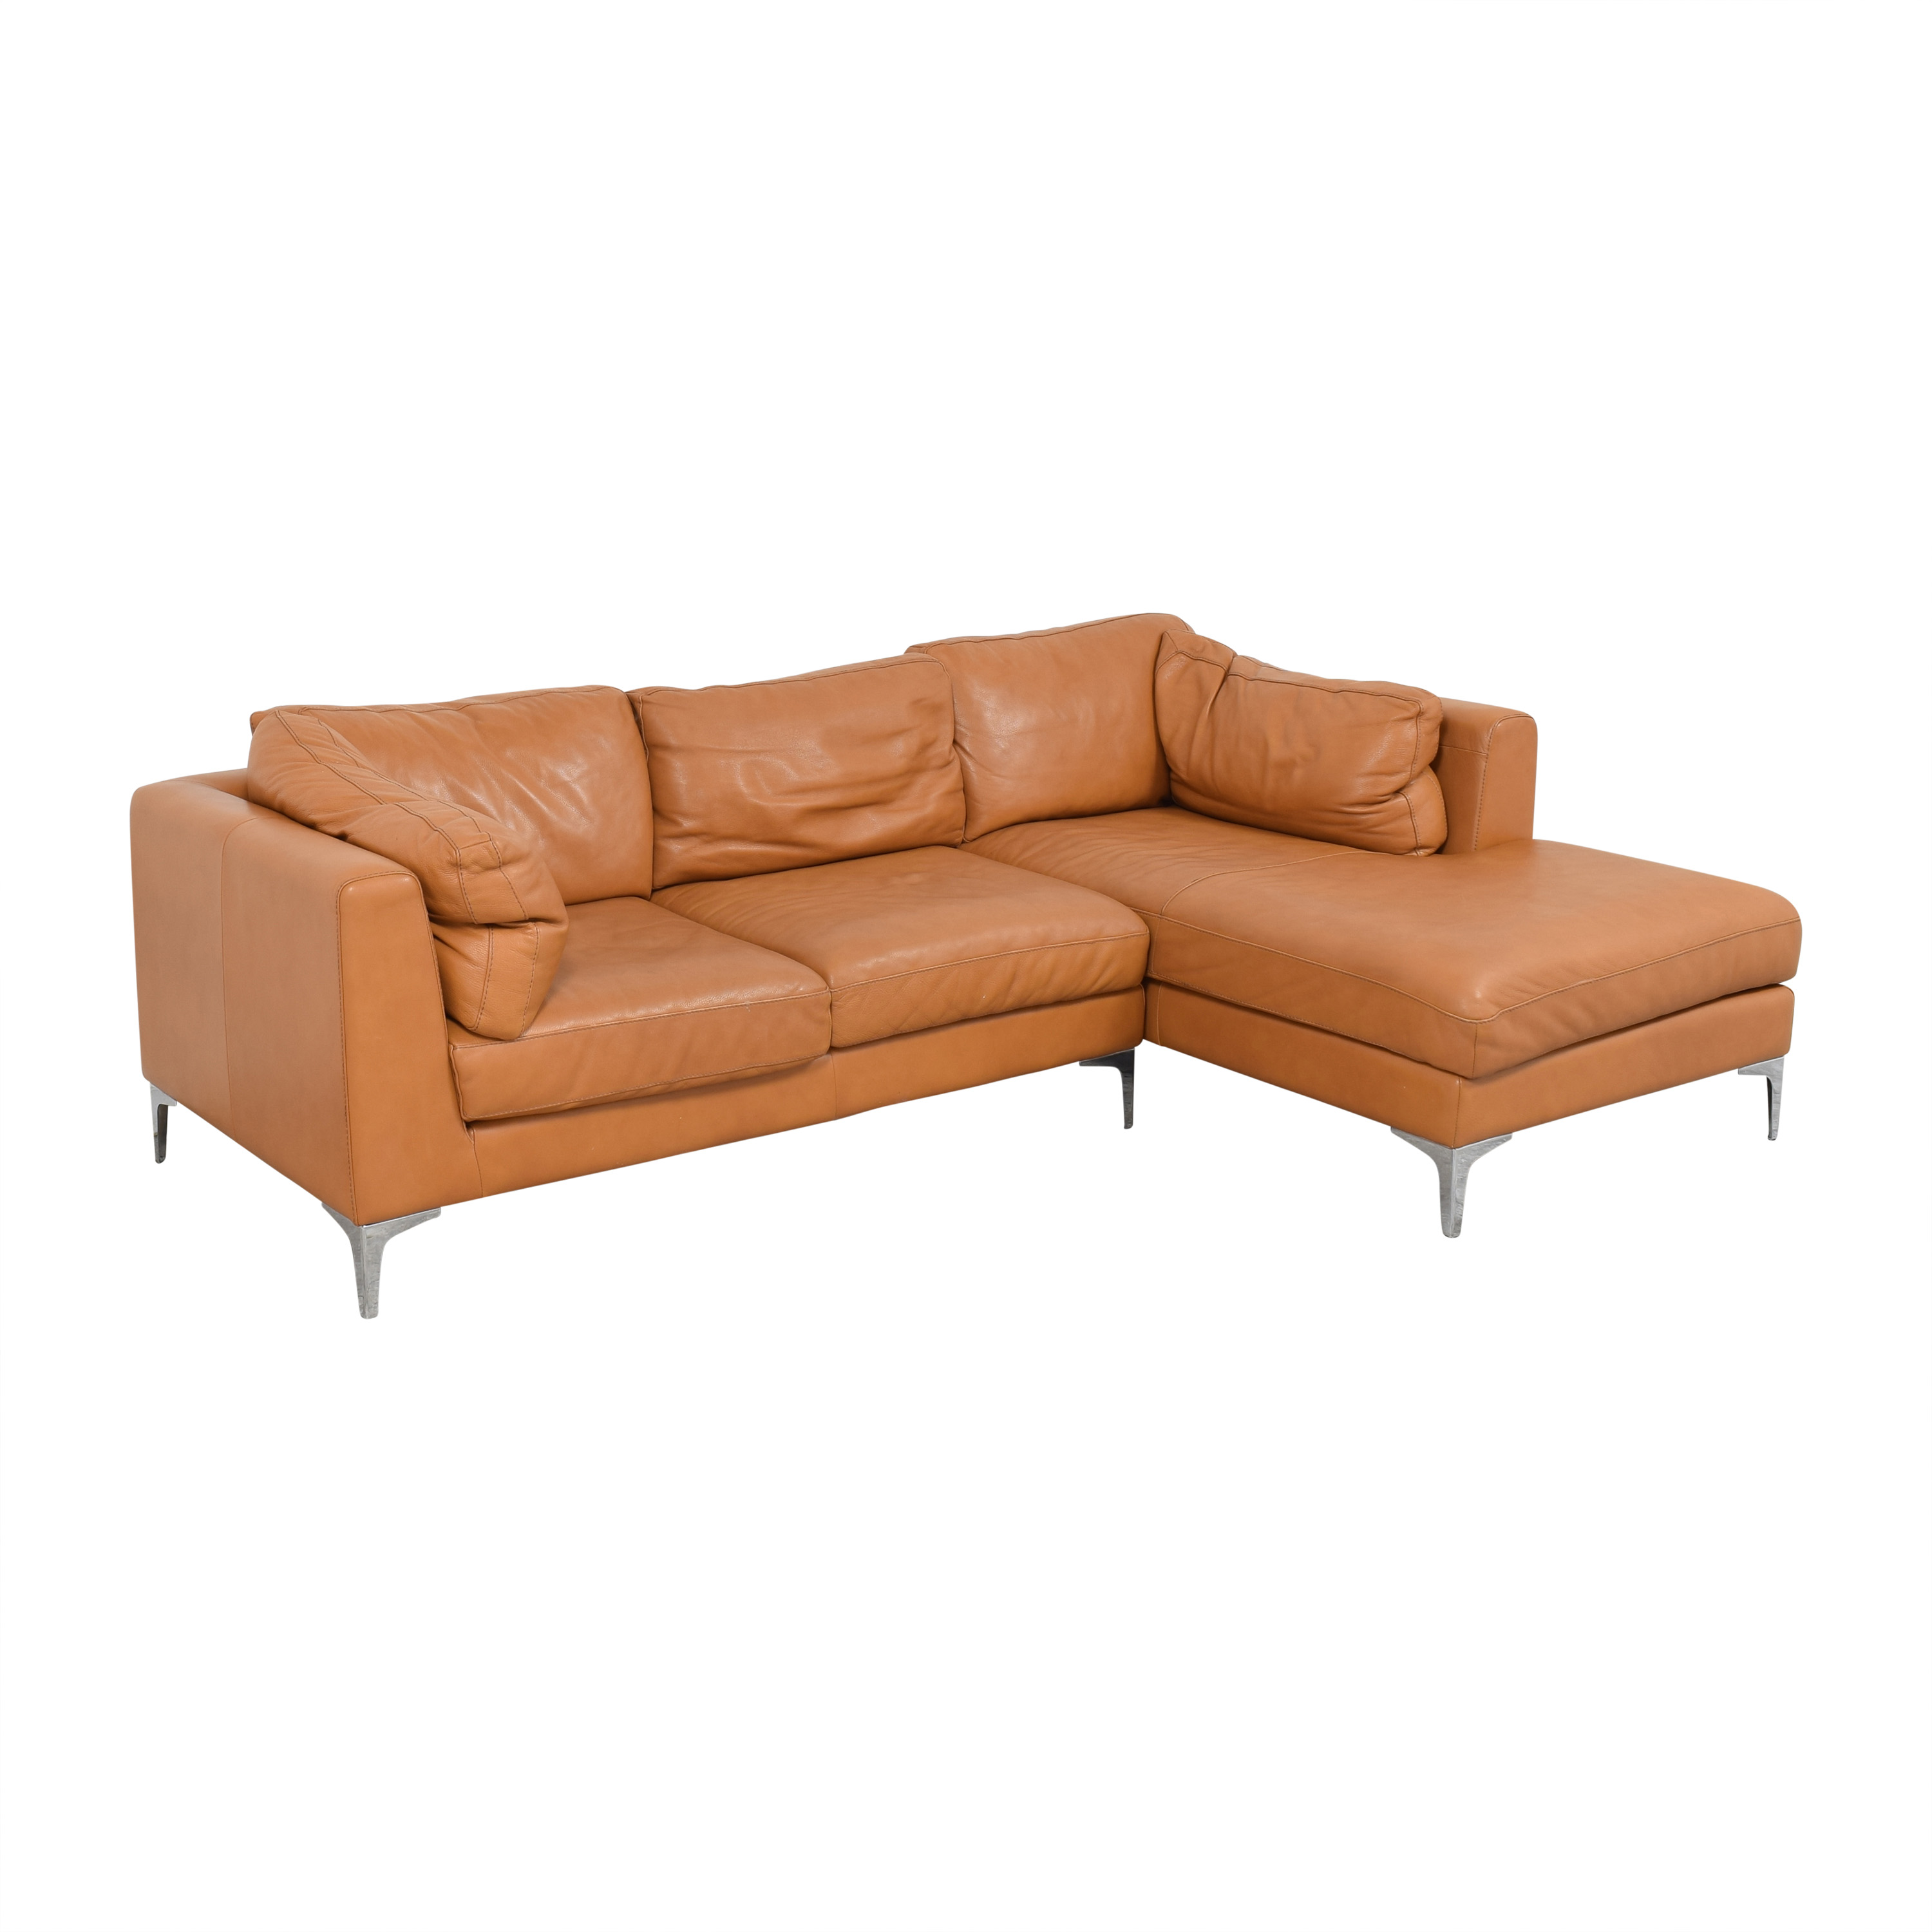 Design Within Reach Design Within Reach Albert Sectional Sofa discount